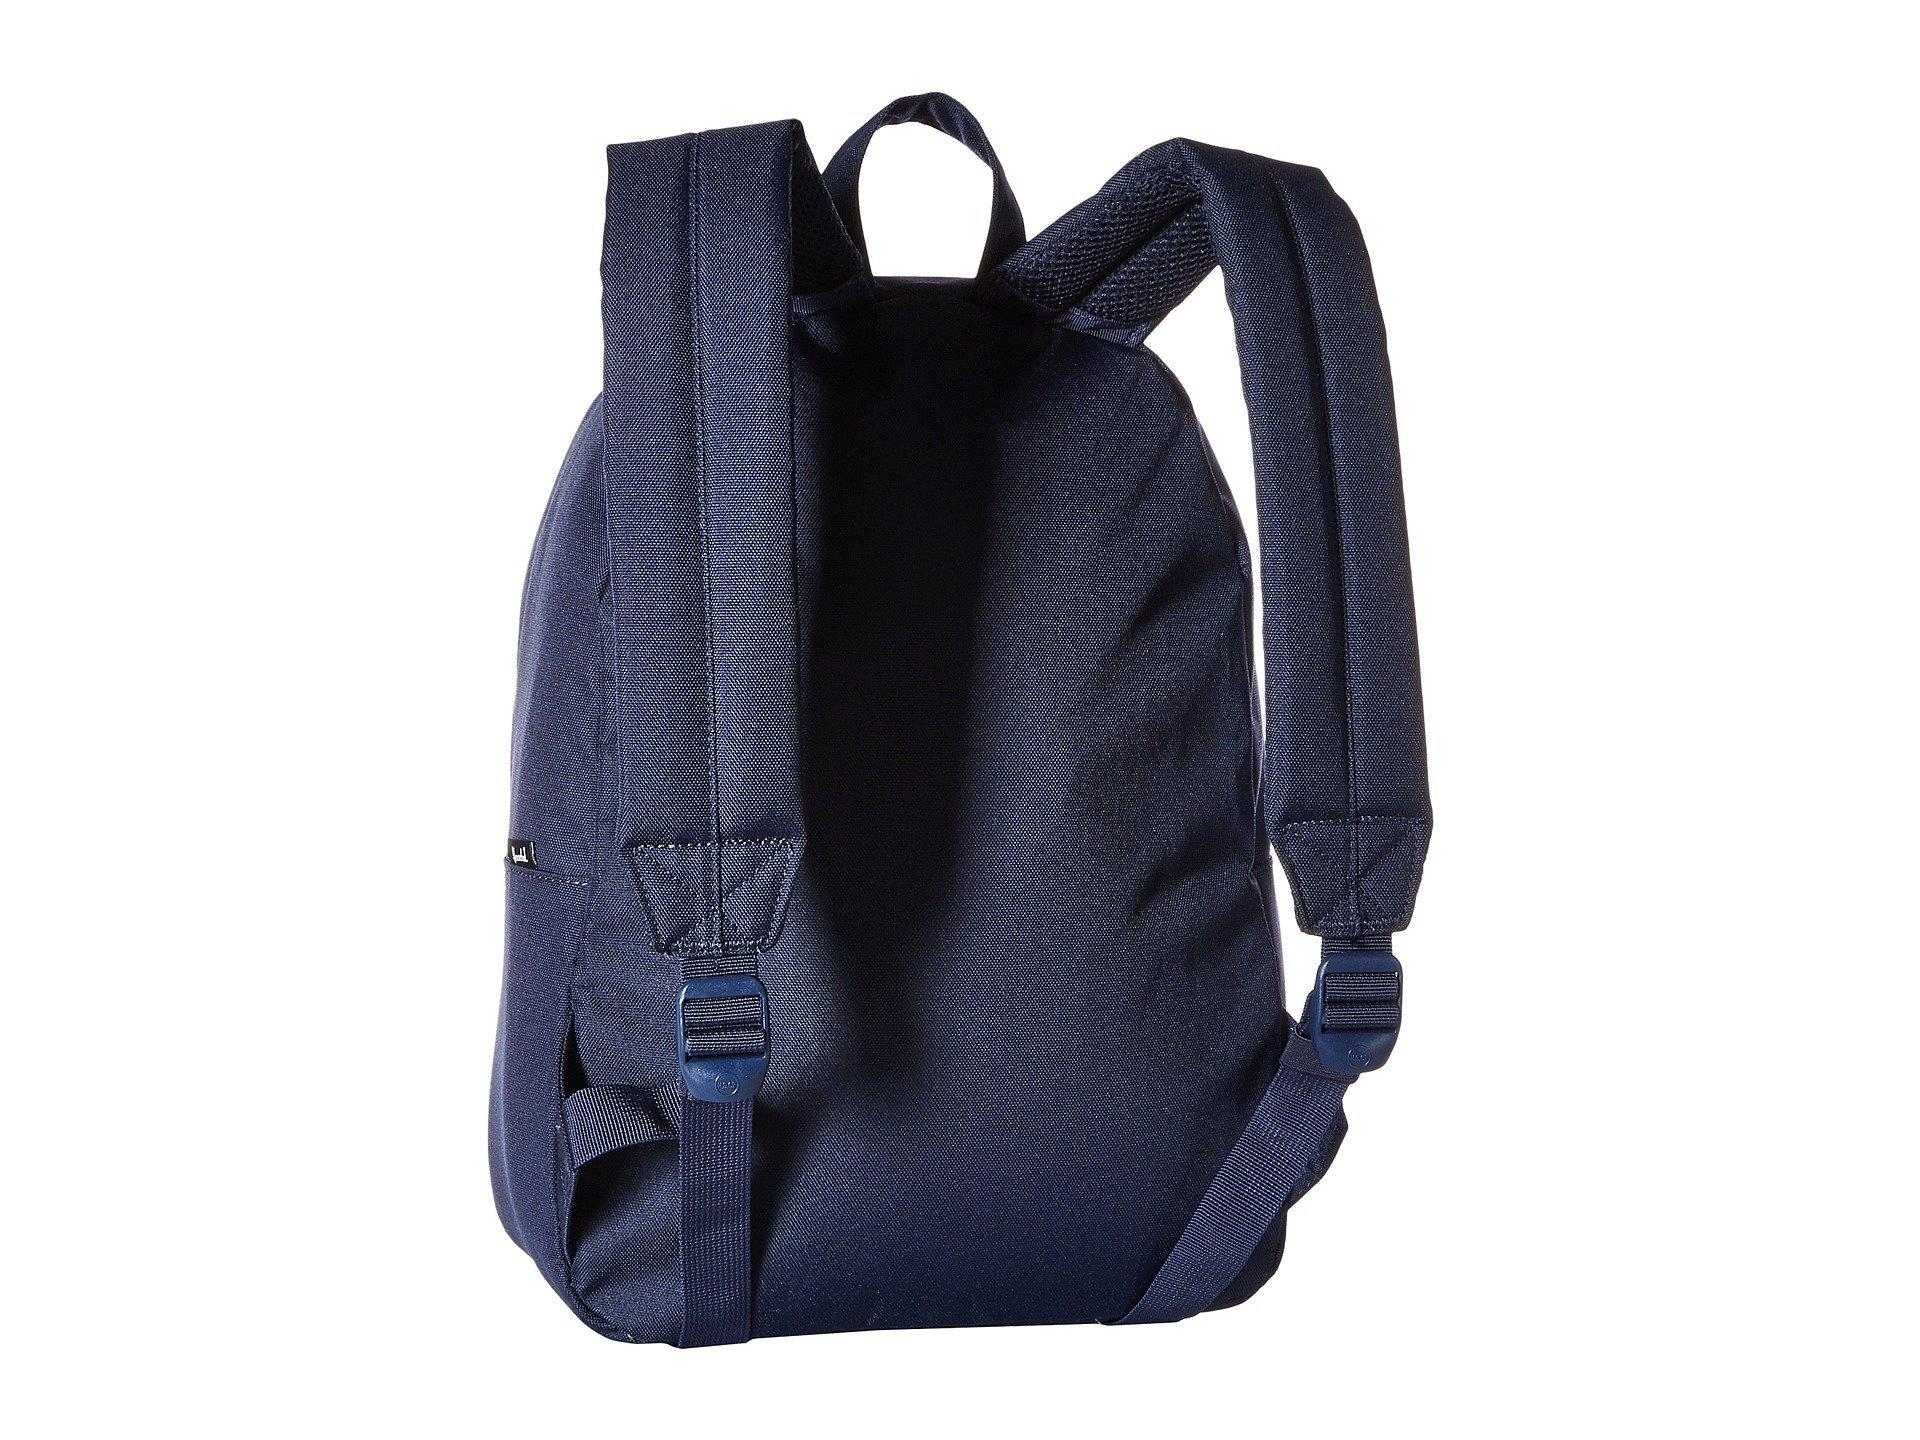 59c897026c3 Herschel Supply Co. - Blue Classic Mid-volume (pink Lady Crosshatch)  Backpack. View fullscreen